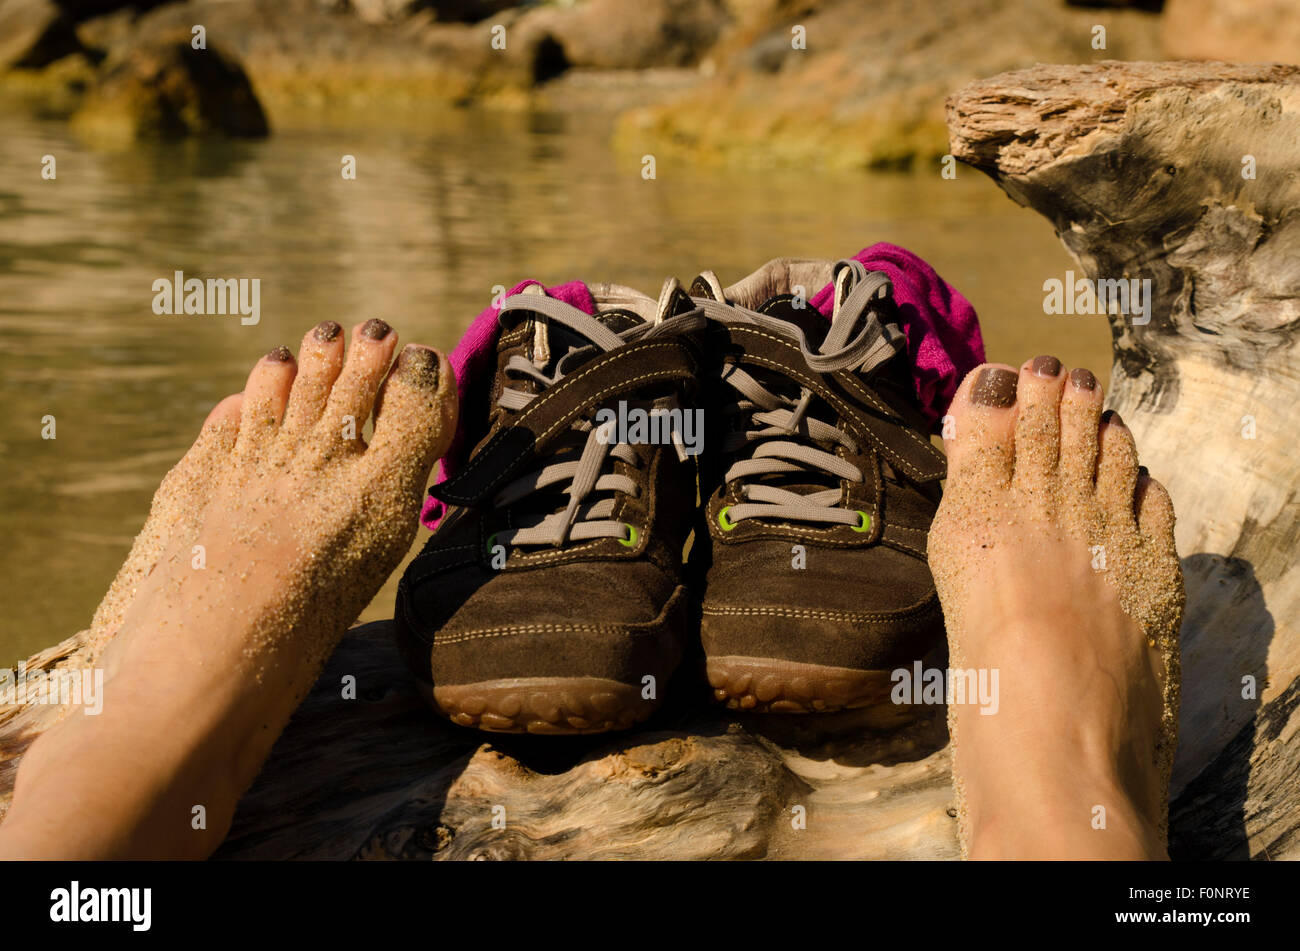 Shoes and bare feet on the beach - Stock Image